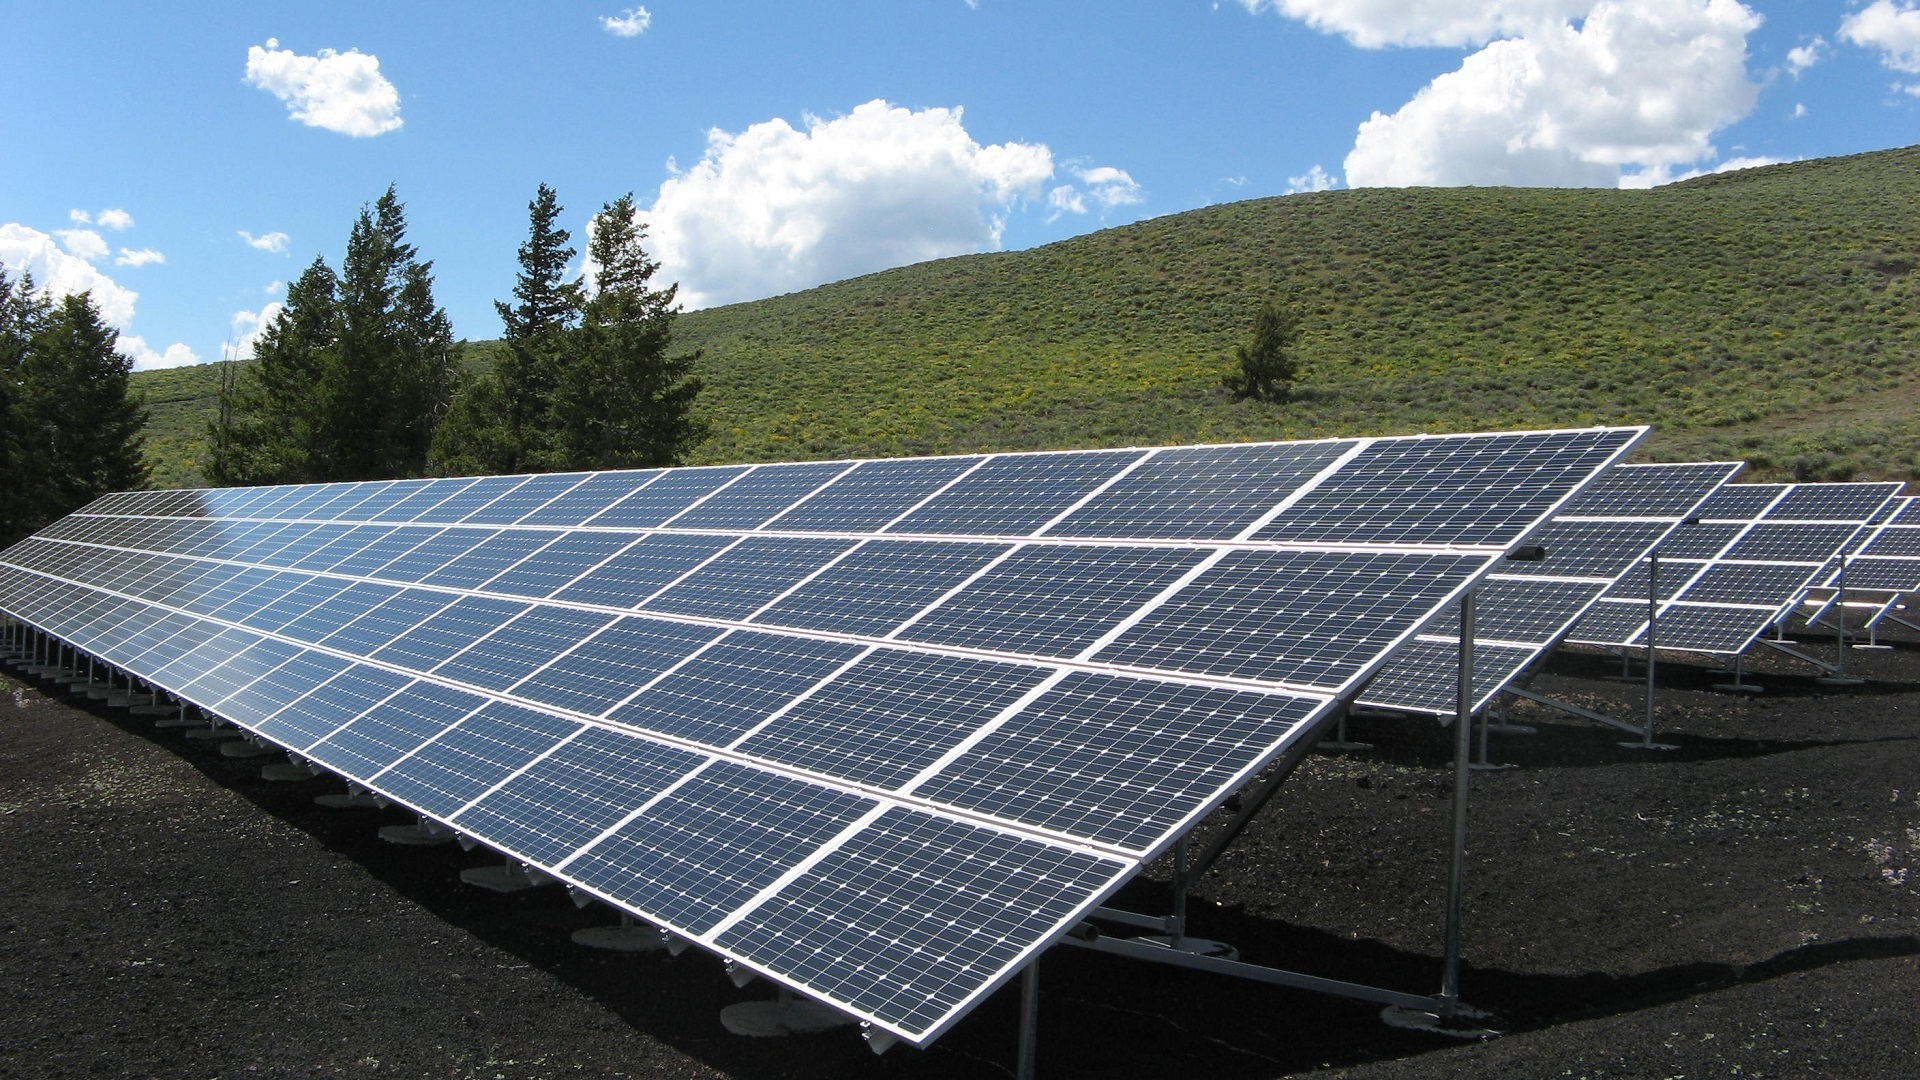 An array of solar panels on a grassy field.